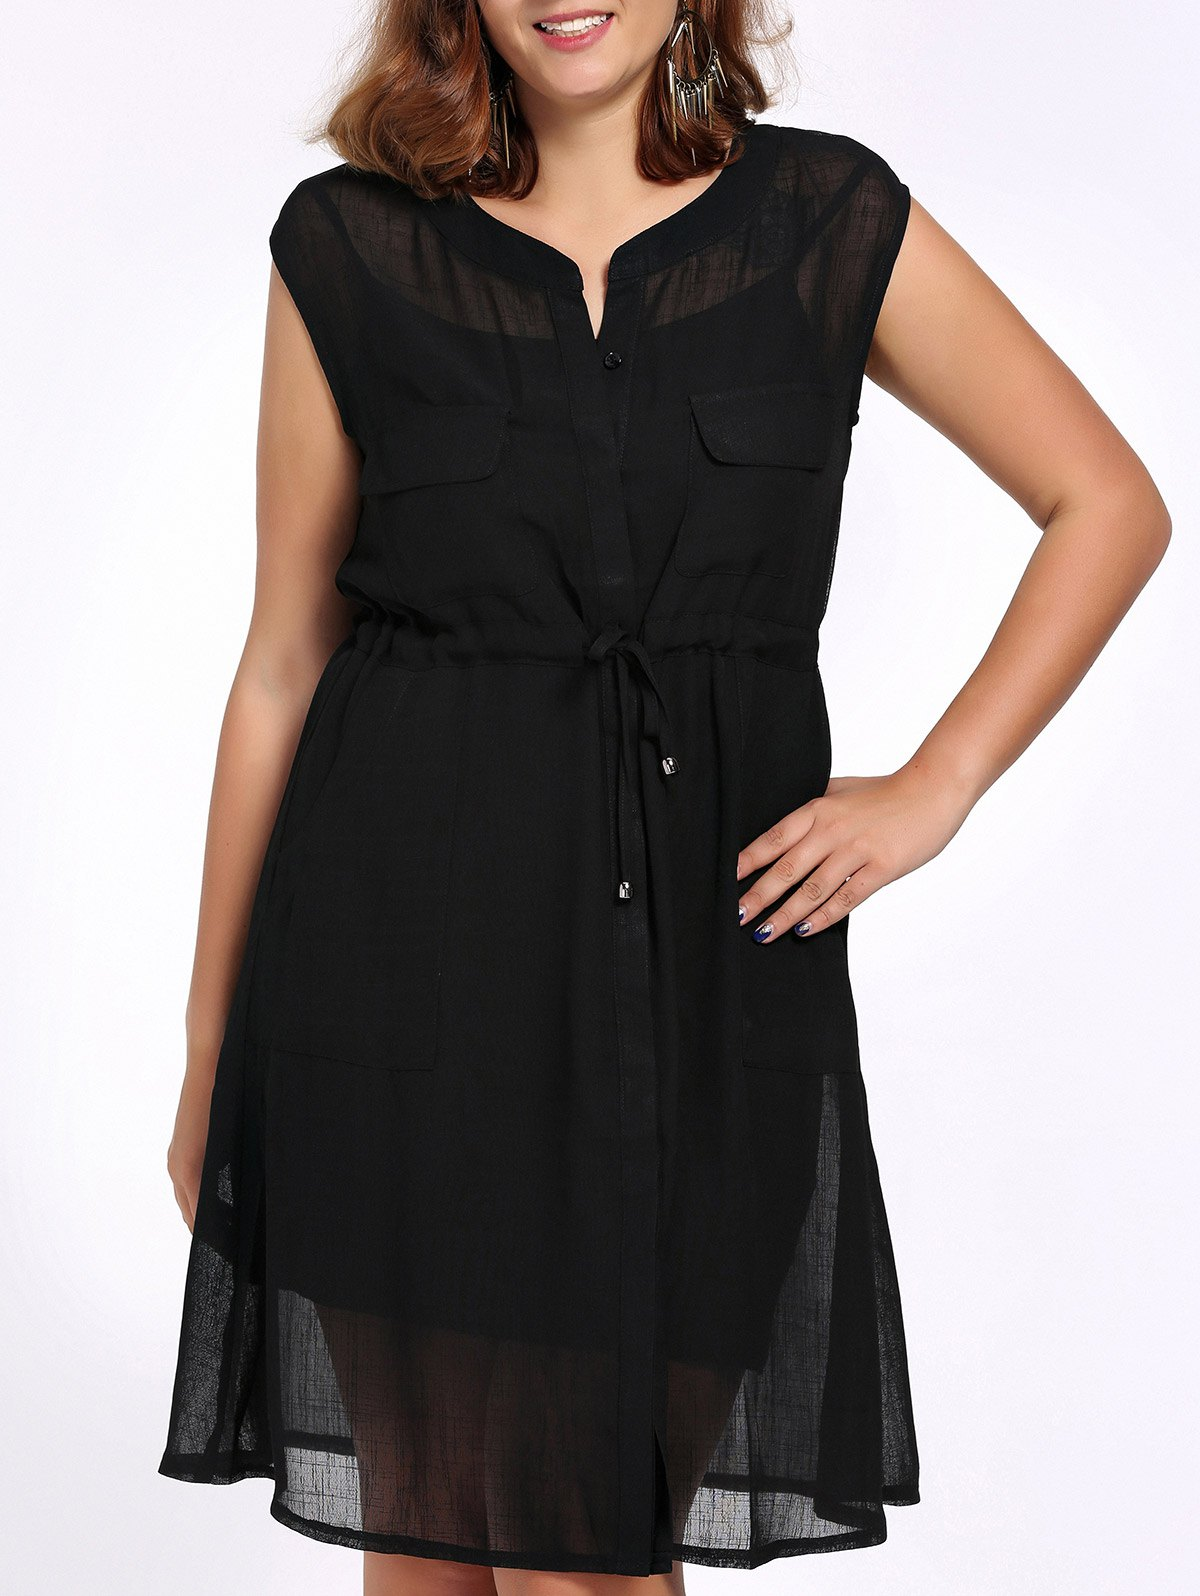 Chic Plus Size Cami Dress + Solid Color Sleeveless Cardigan Women's Twinset - BLACK 2XL